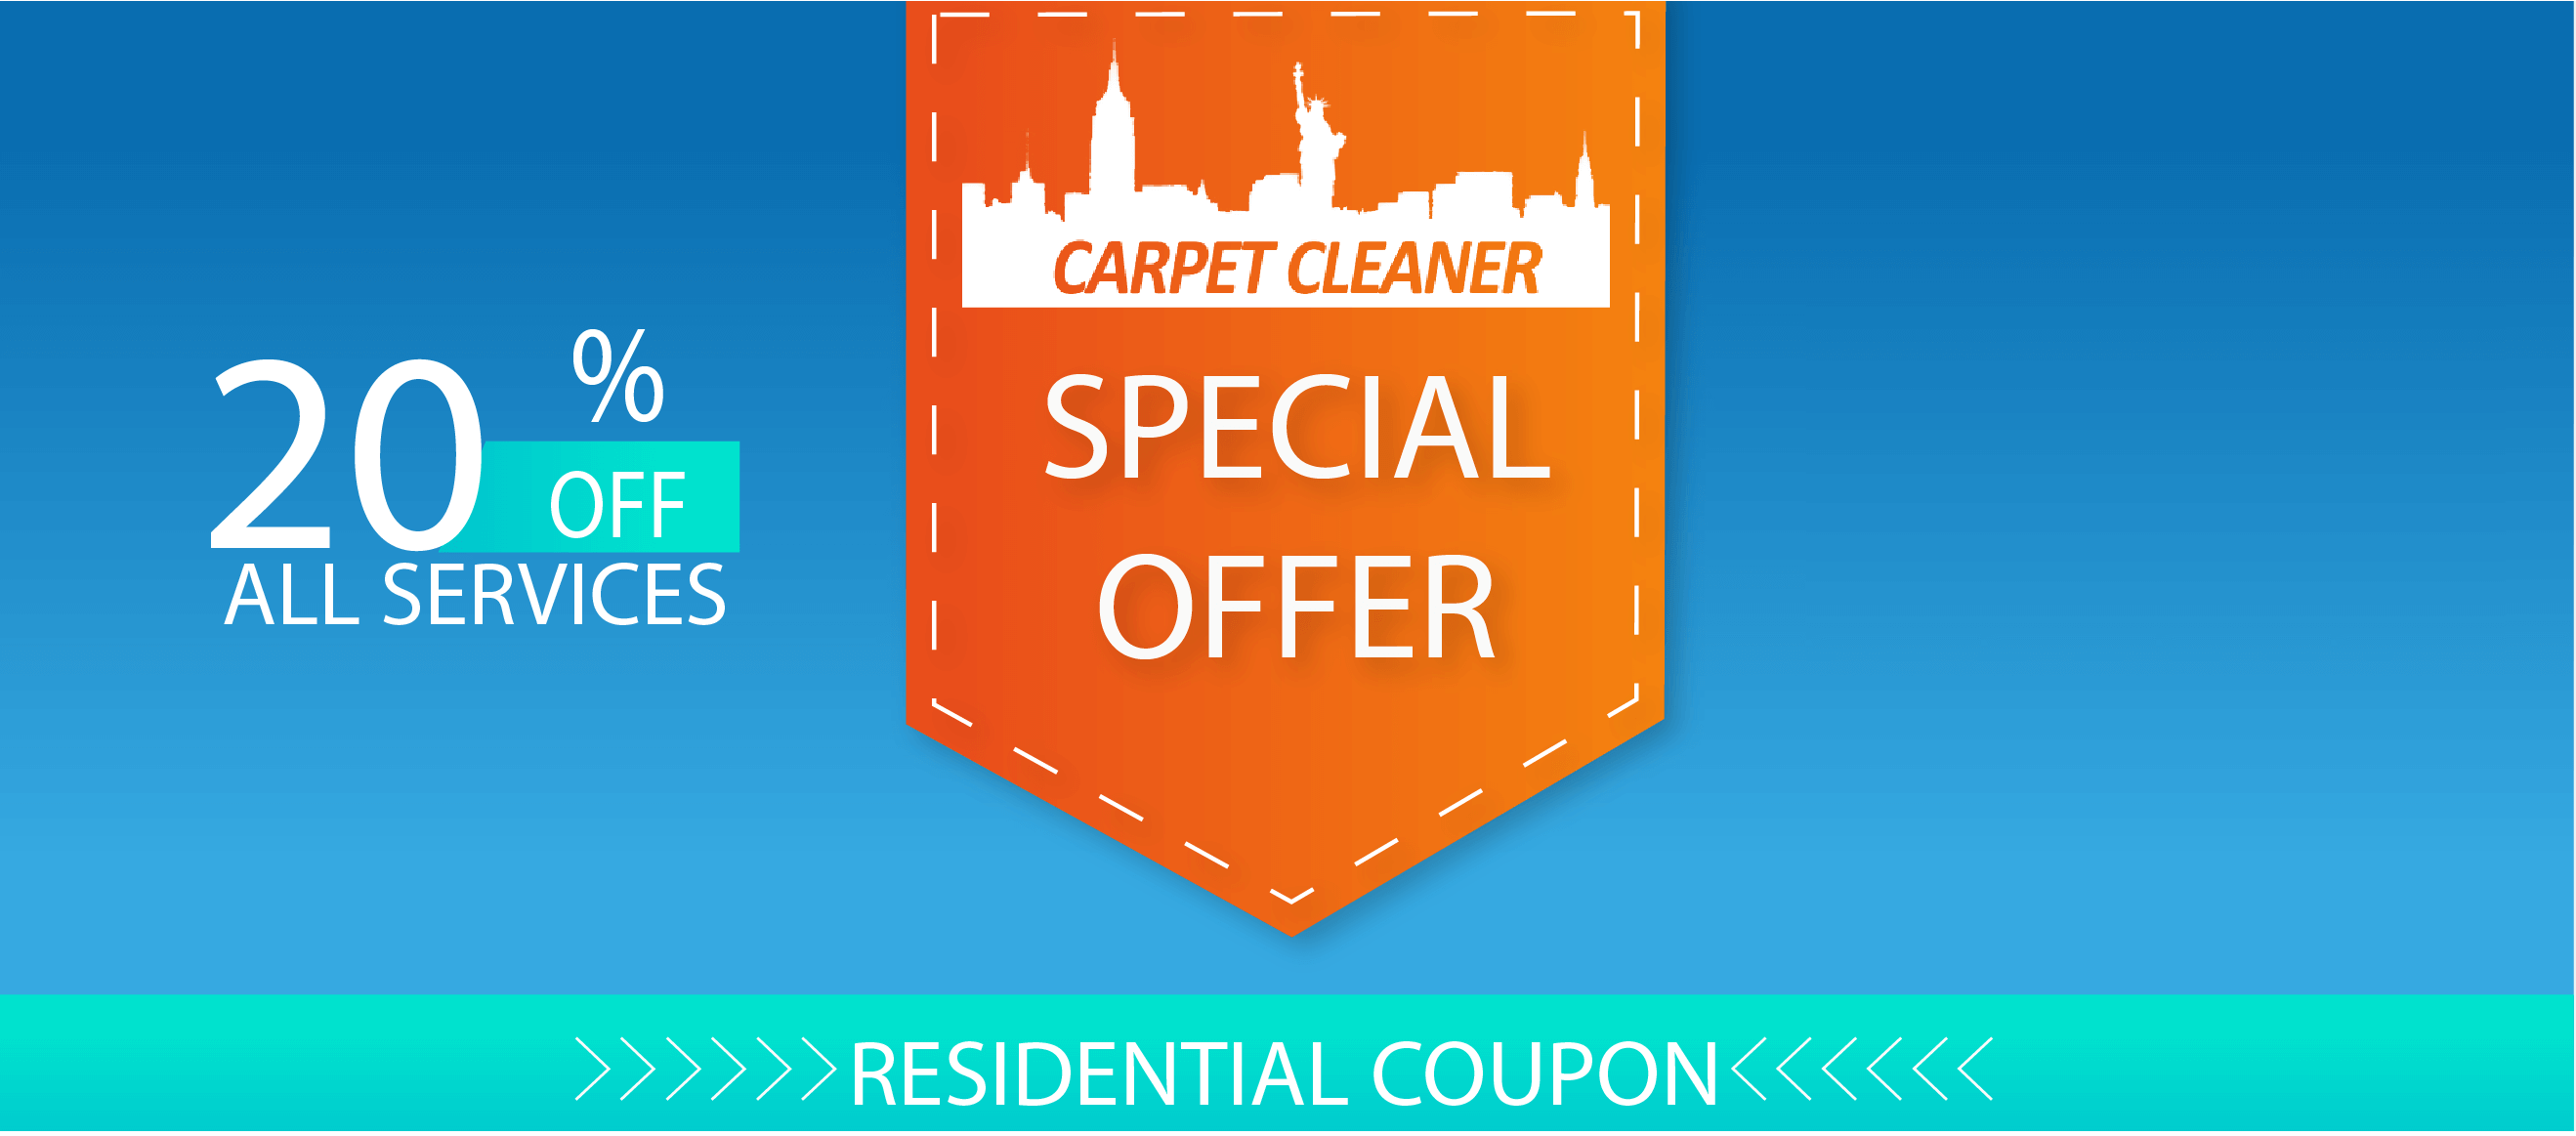 Carpet Cleaner Apartments and Homes special offer